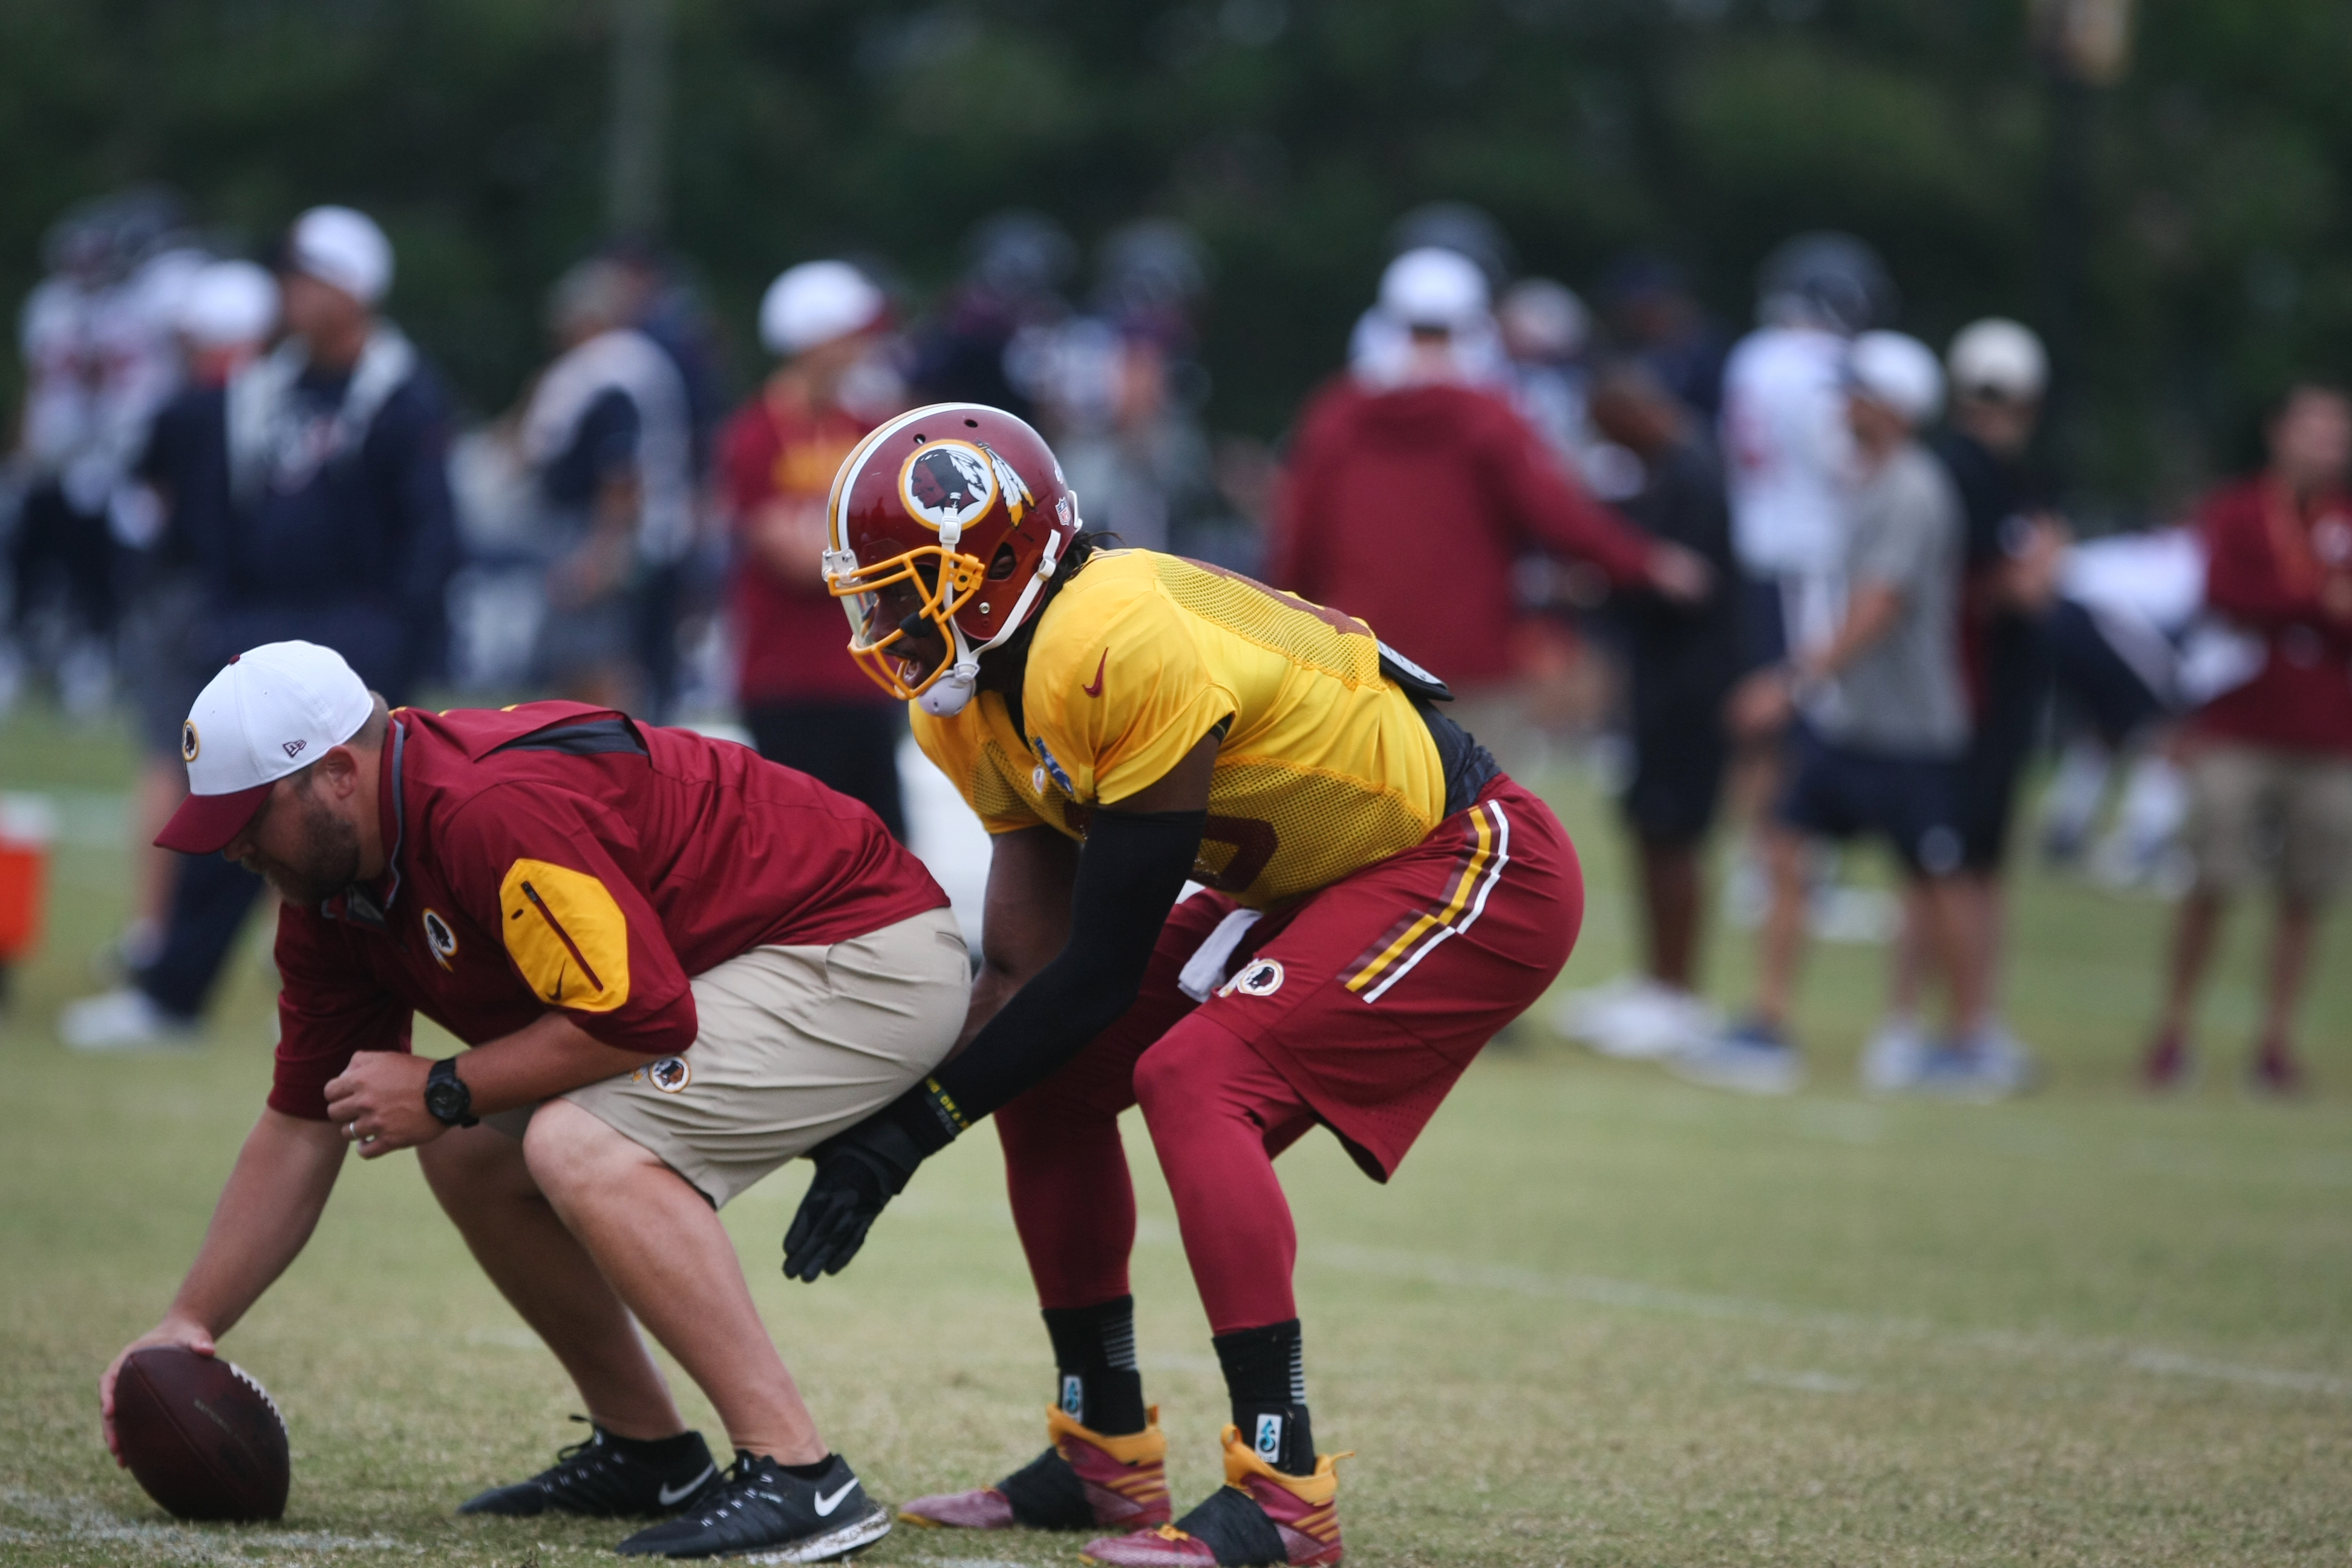 Washington Redskins quarterback Robert Griffin III takes a snap during a joint NFL training camp with the Houston Texans in Richmond, Va., Friday, Aug. 7, 2015.   (AP Photo/Jason Hirschfeld)